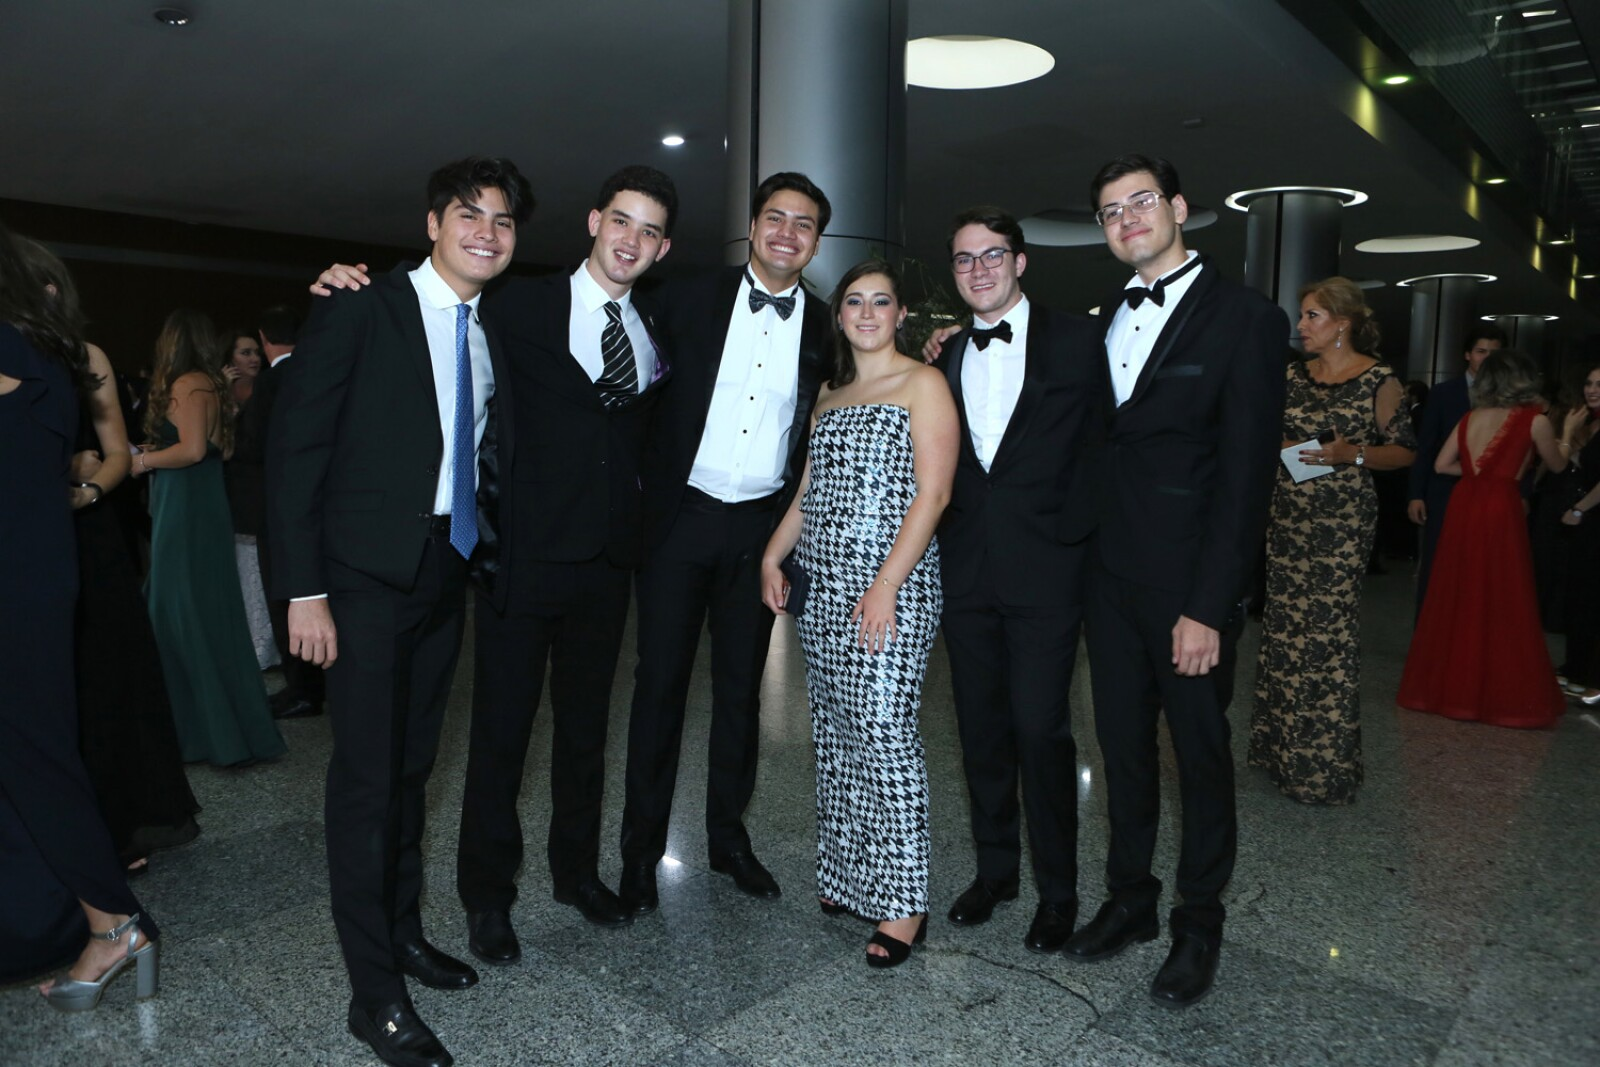 Fiesta de graduación The American School Foundation